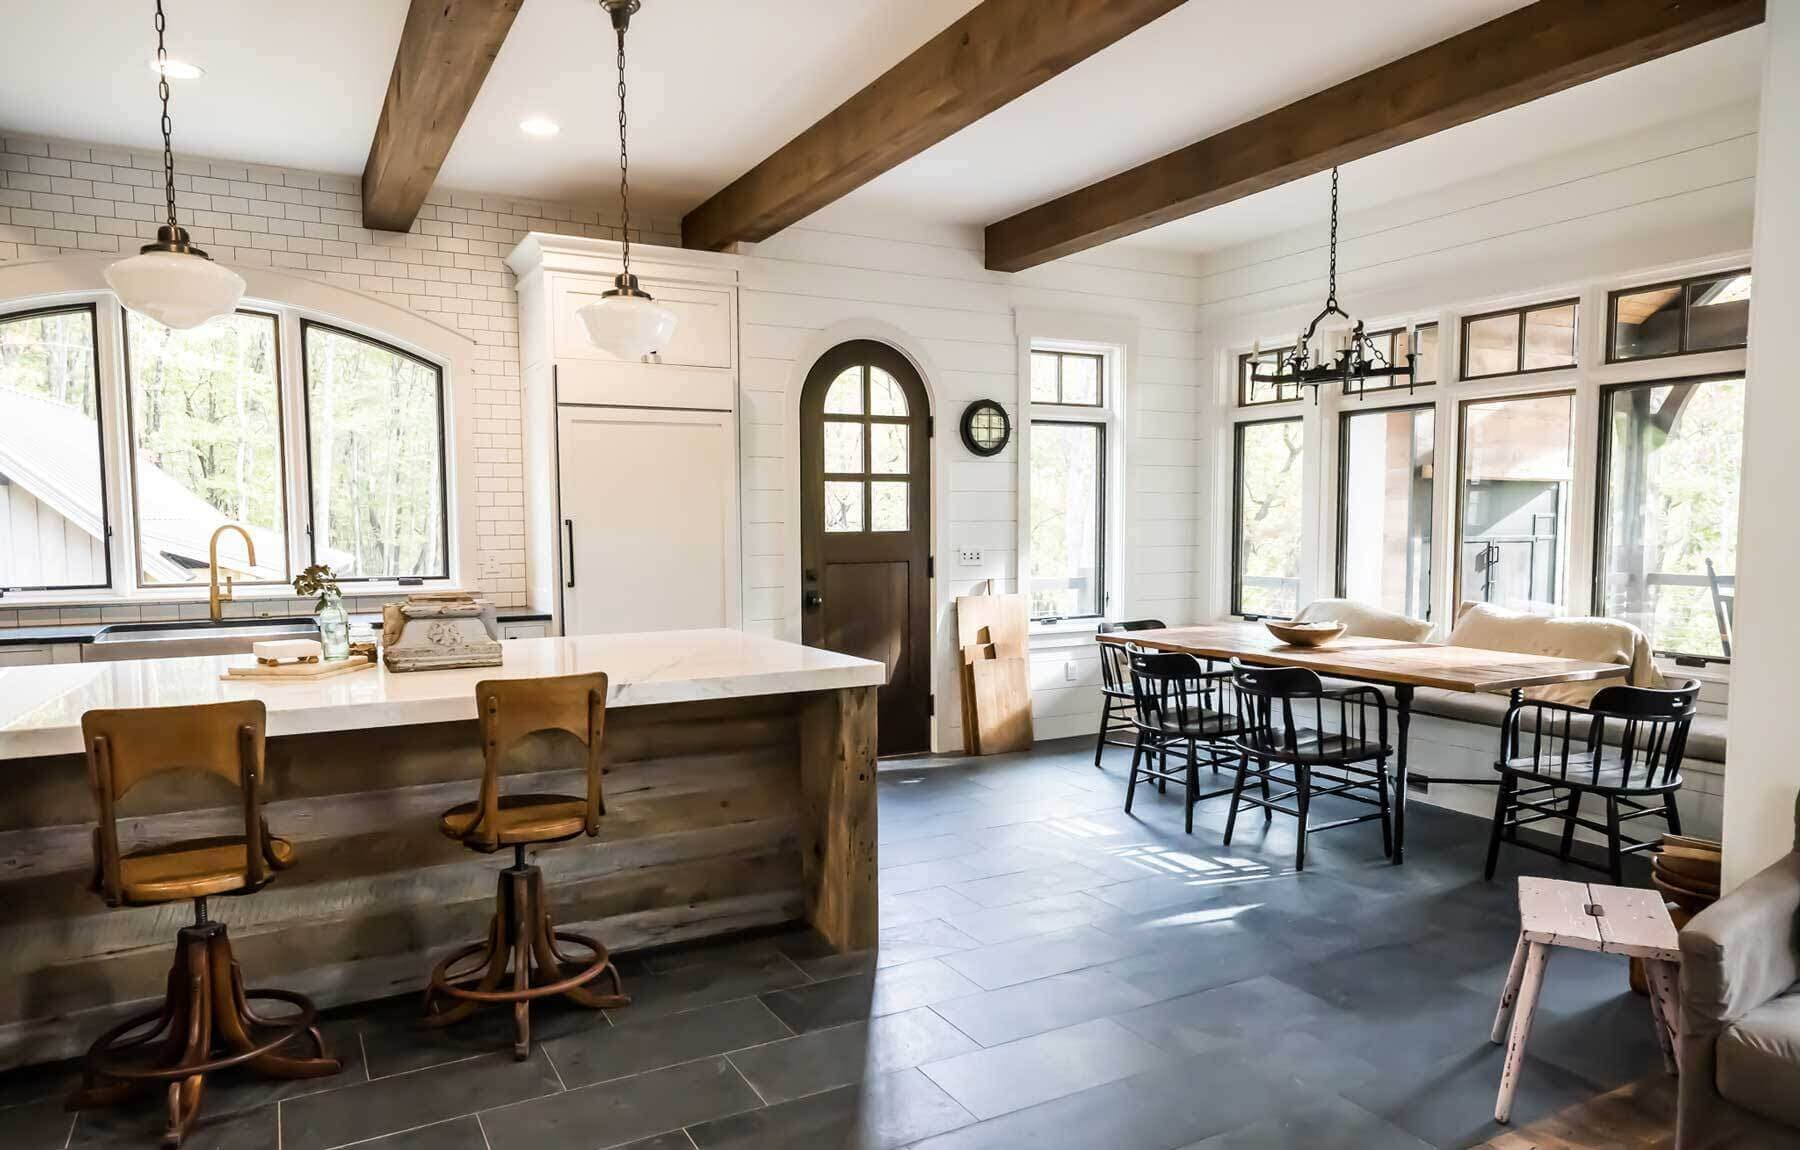 Rustic circular sawn reclaimed wood box beams installed in kitchen and dining ceilings.